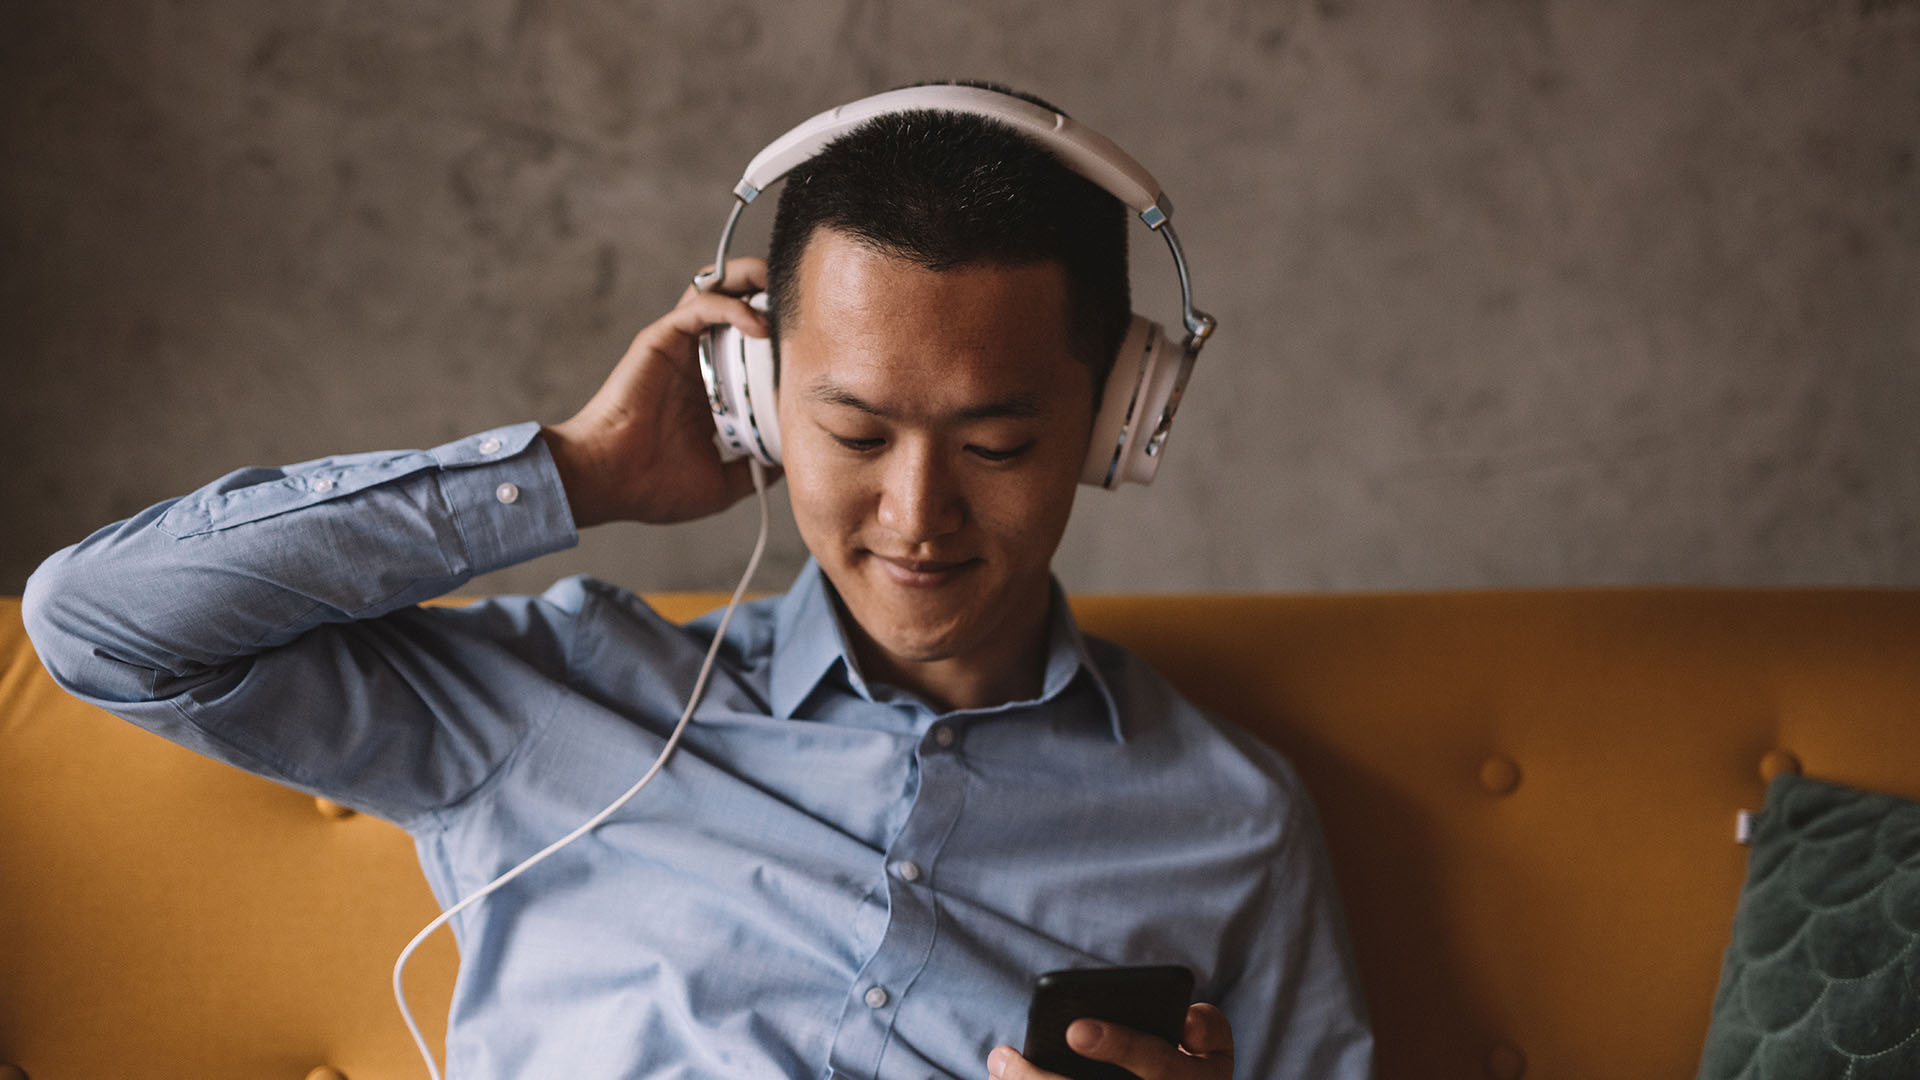 Business Owner Listening to a podcast